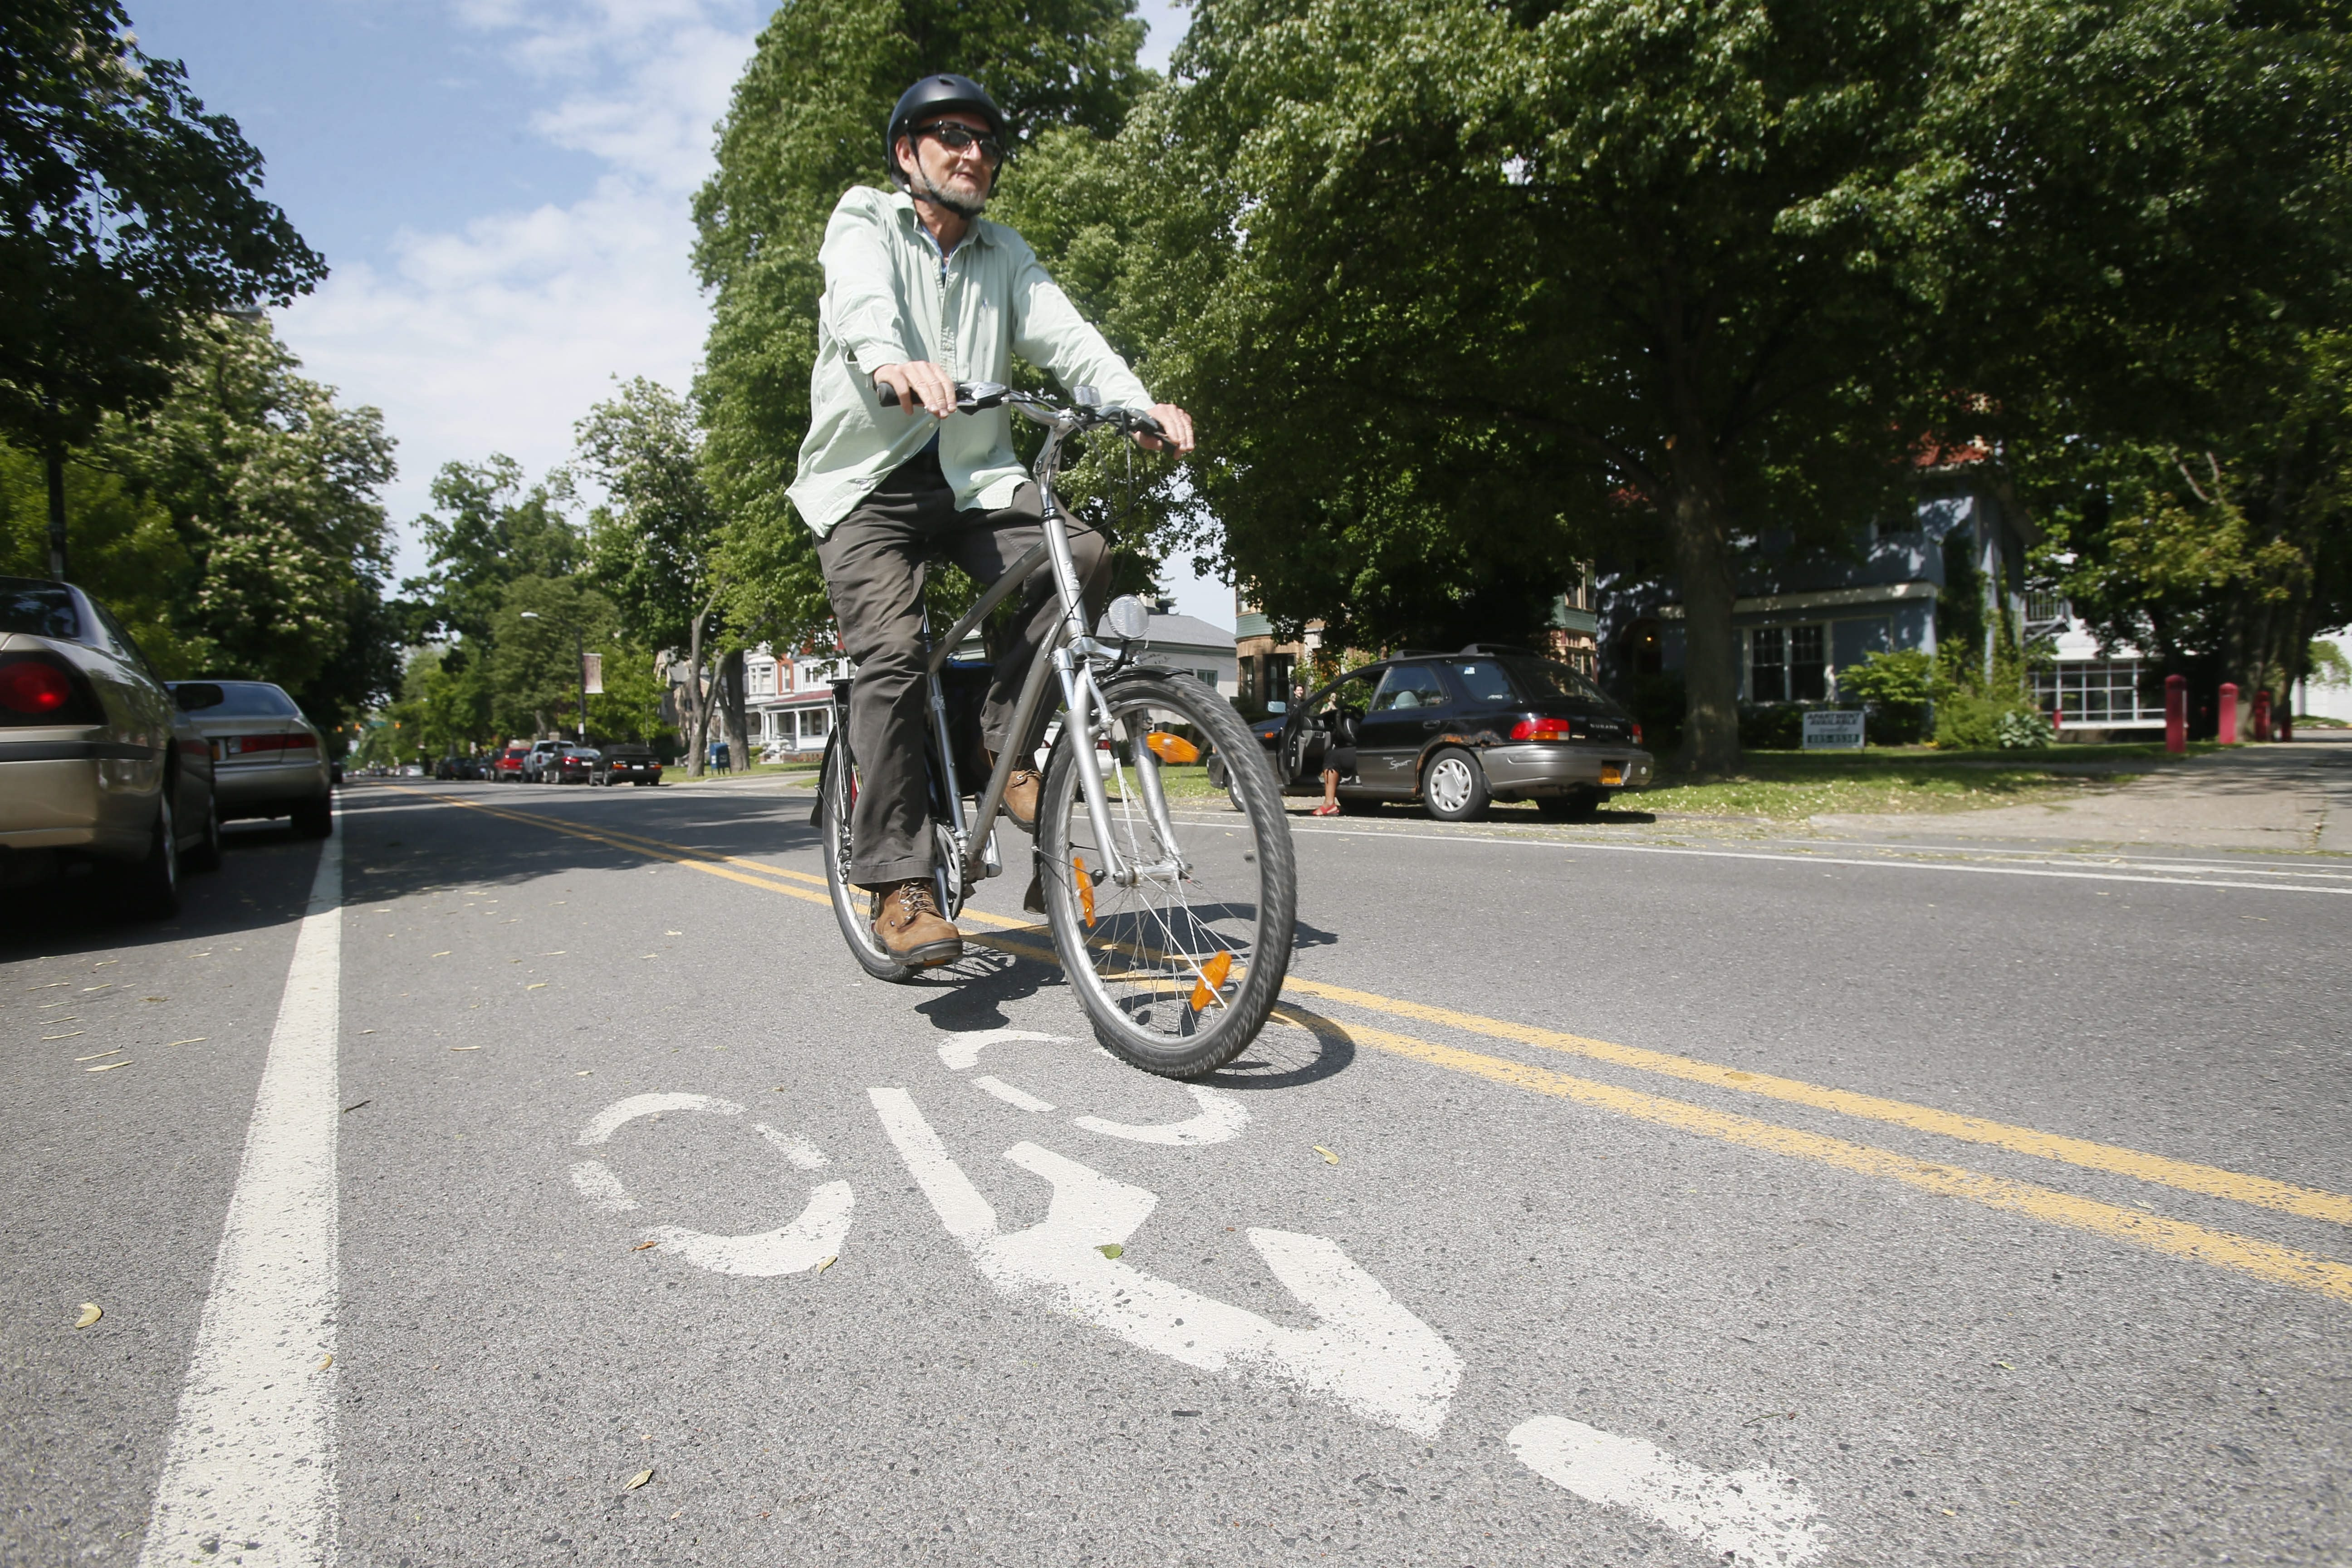 Cyclist Paul Siepierski of Buffalo rides in the bike lane on Linwood Avenue, which is one-way for automobile traffic, but features well marked bike lanes in either direction. (Derek Gee/News file photo)